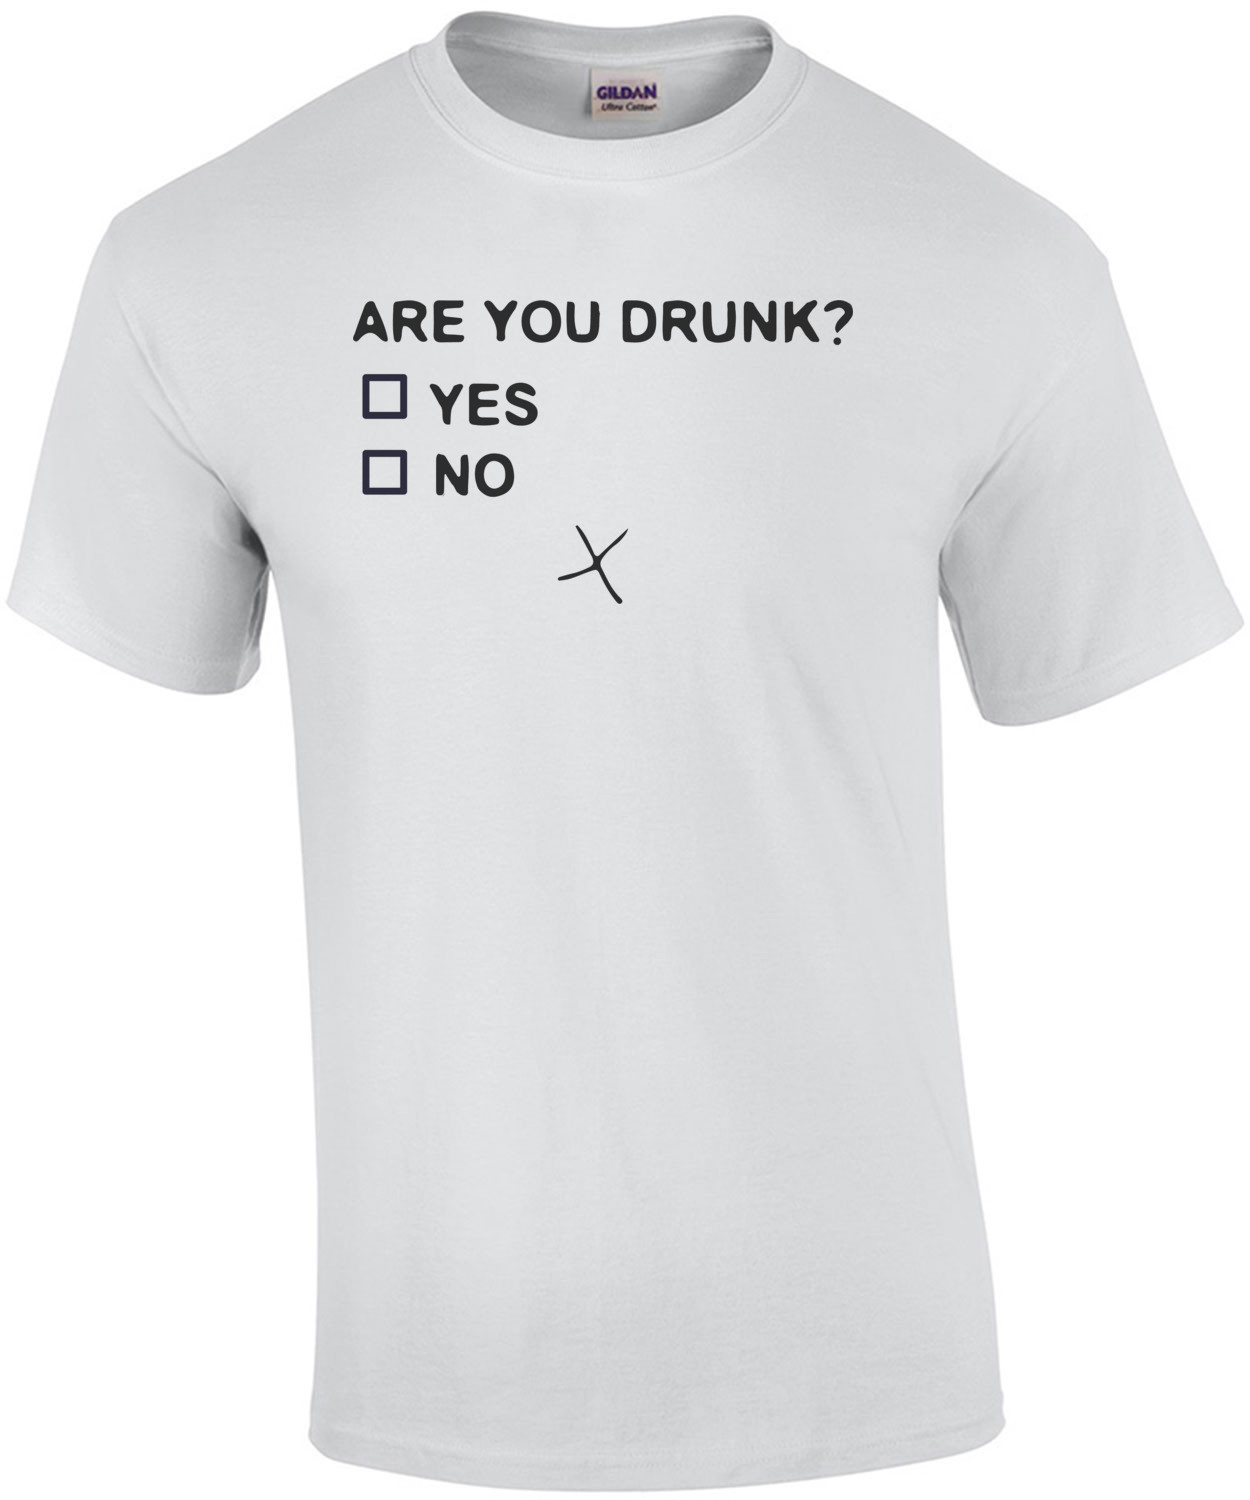 Are you drunk Funny Drinking T-Shirt